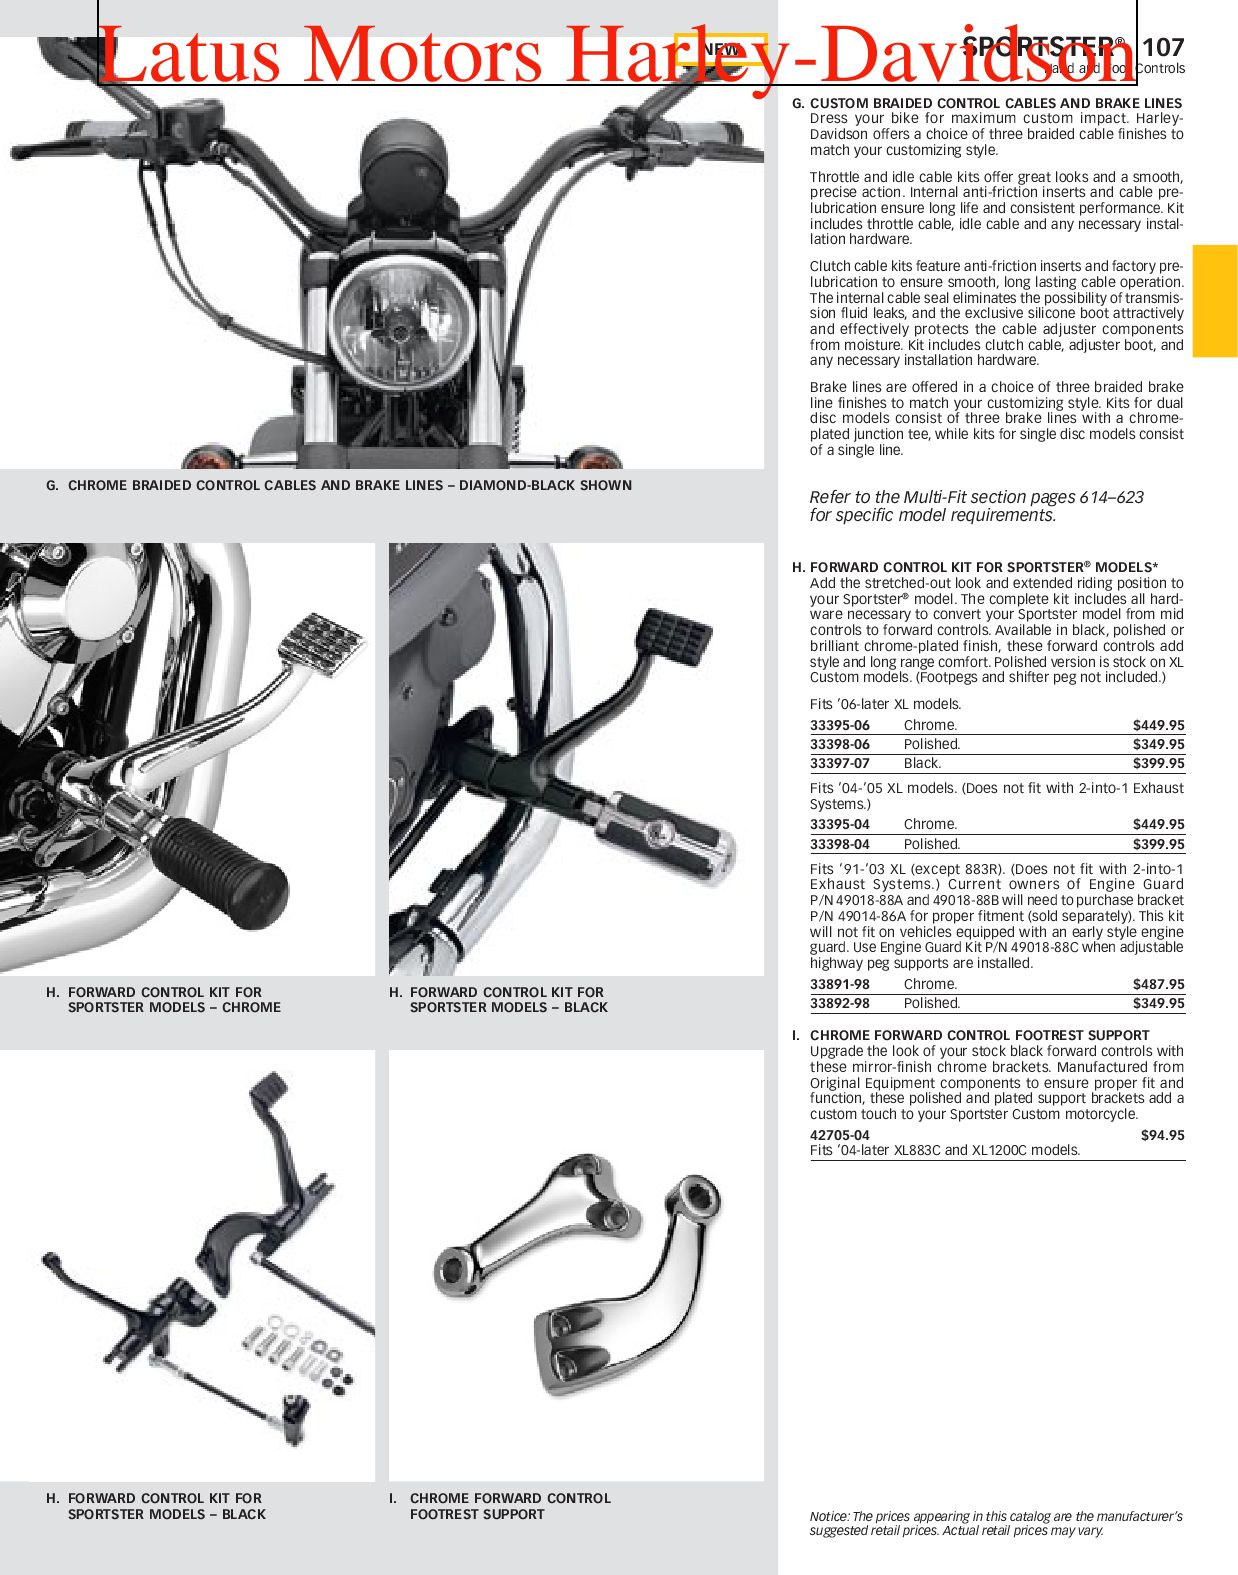 Harley-Davidson Sportster® Parts and Accessories Catalog by